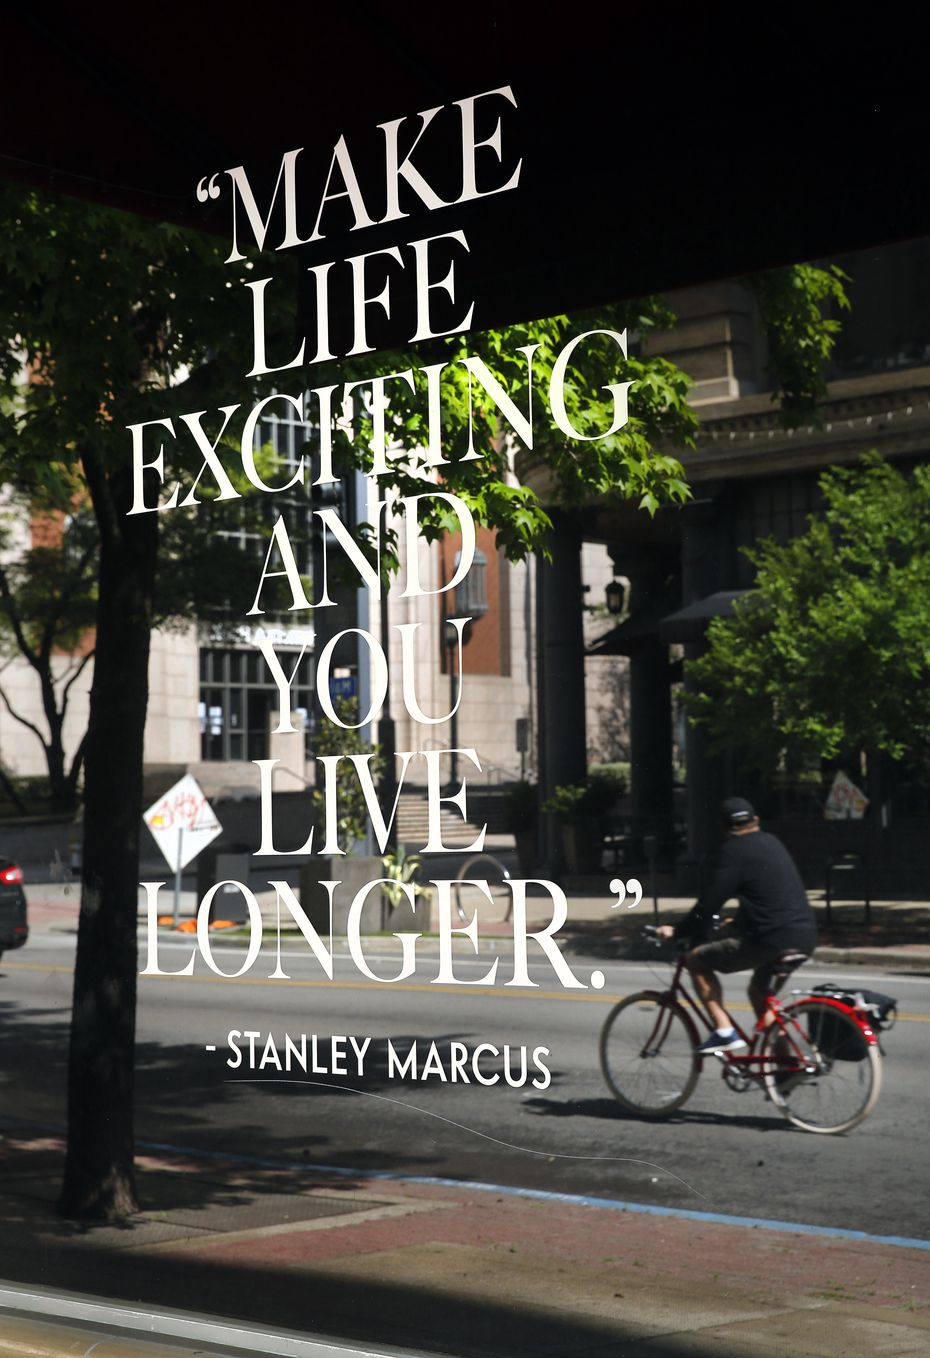 A quote by former Neiman Marcus president and later chairman of the board Stanley Marcus appeared on a window of its flagship store in downtown Dallas on April 19.